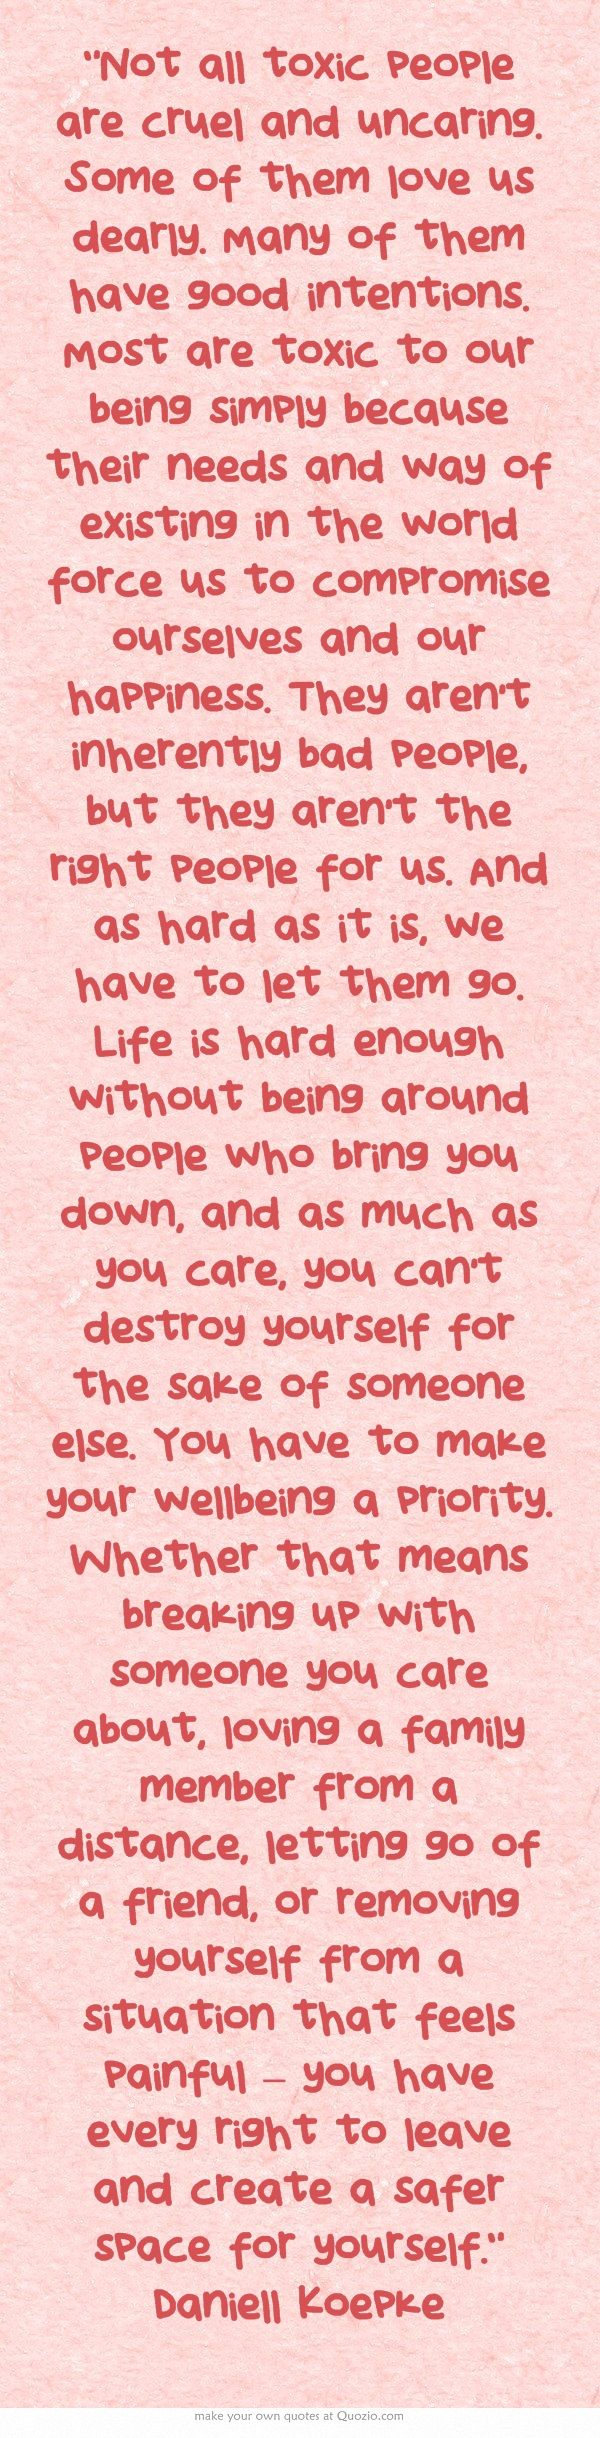 Quotes About Being Let Down By Someone You Love Quotes About Having